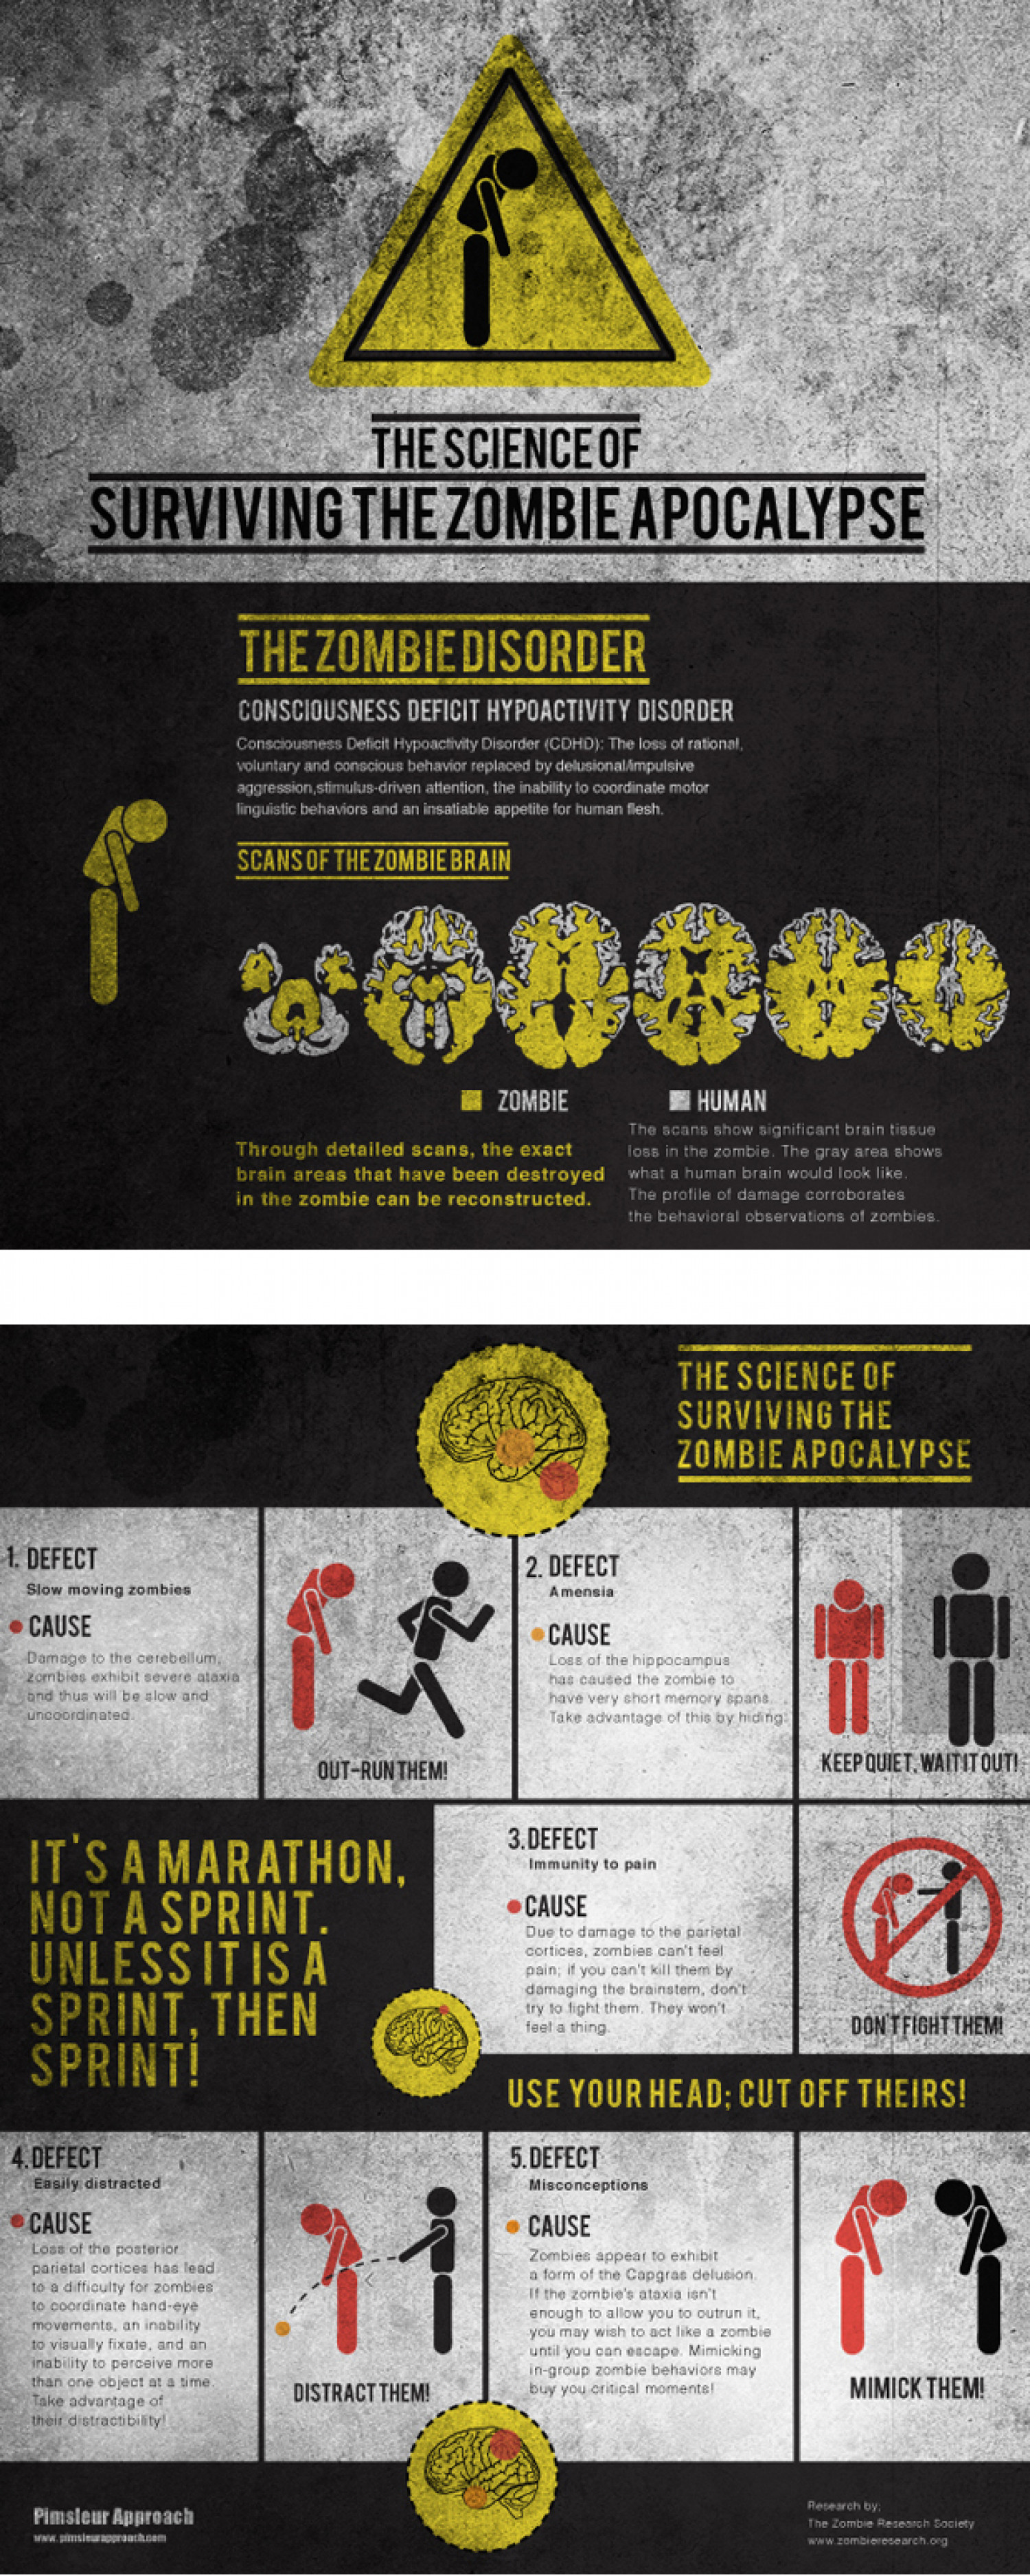 The Science of Surviving the Zombie Apocalypse Infographic